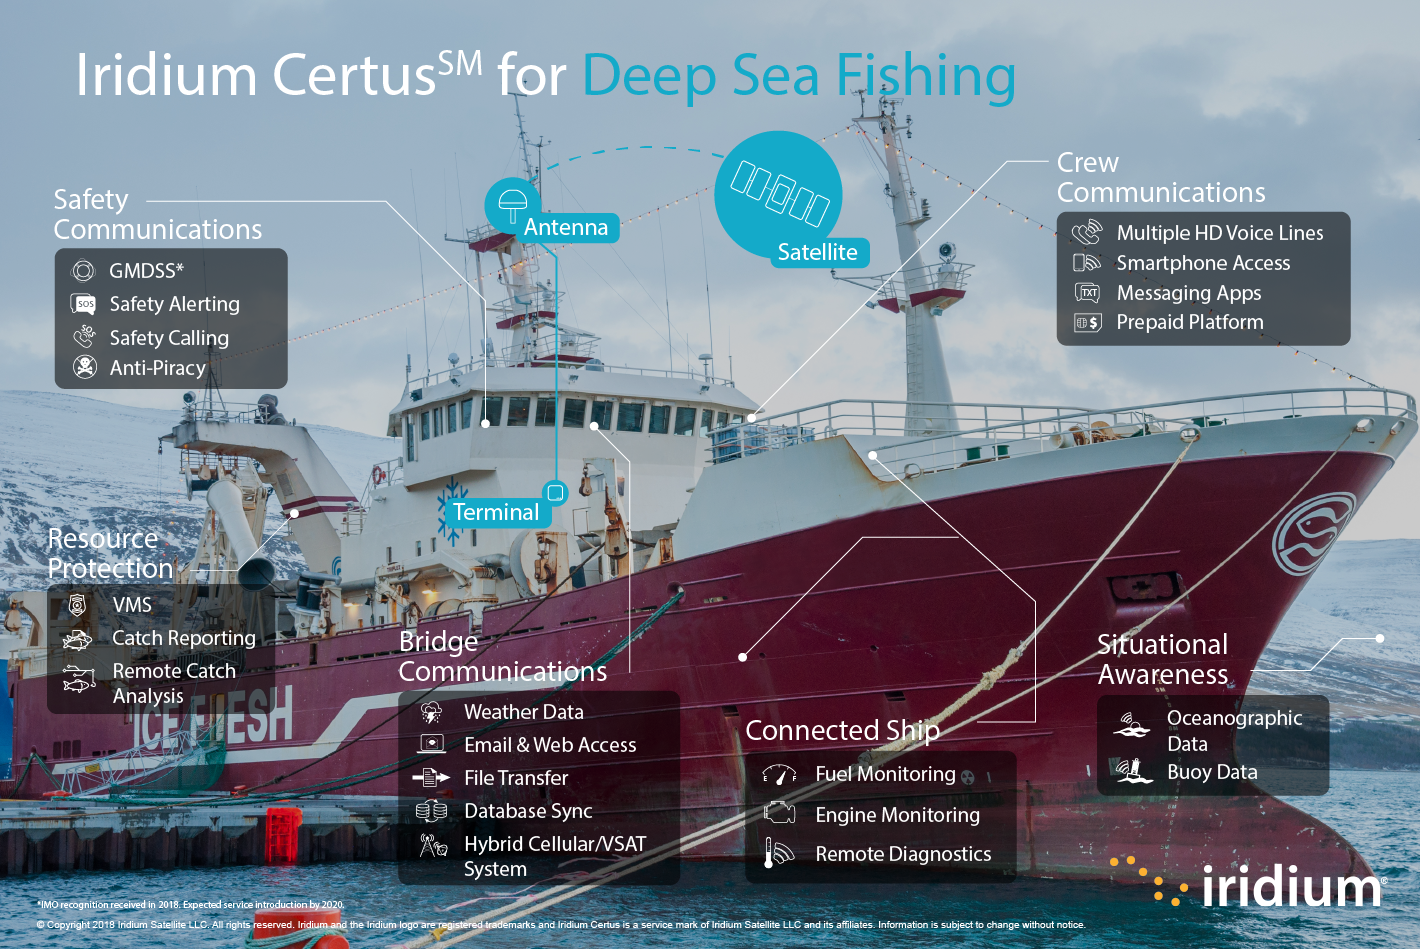 Infographic showing use cases for Iridium Certus within commercial fishing.